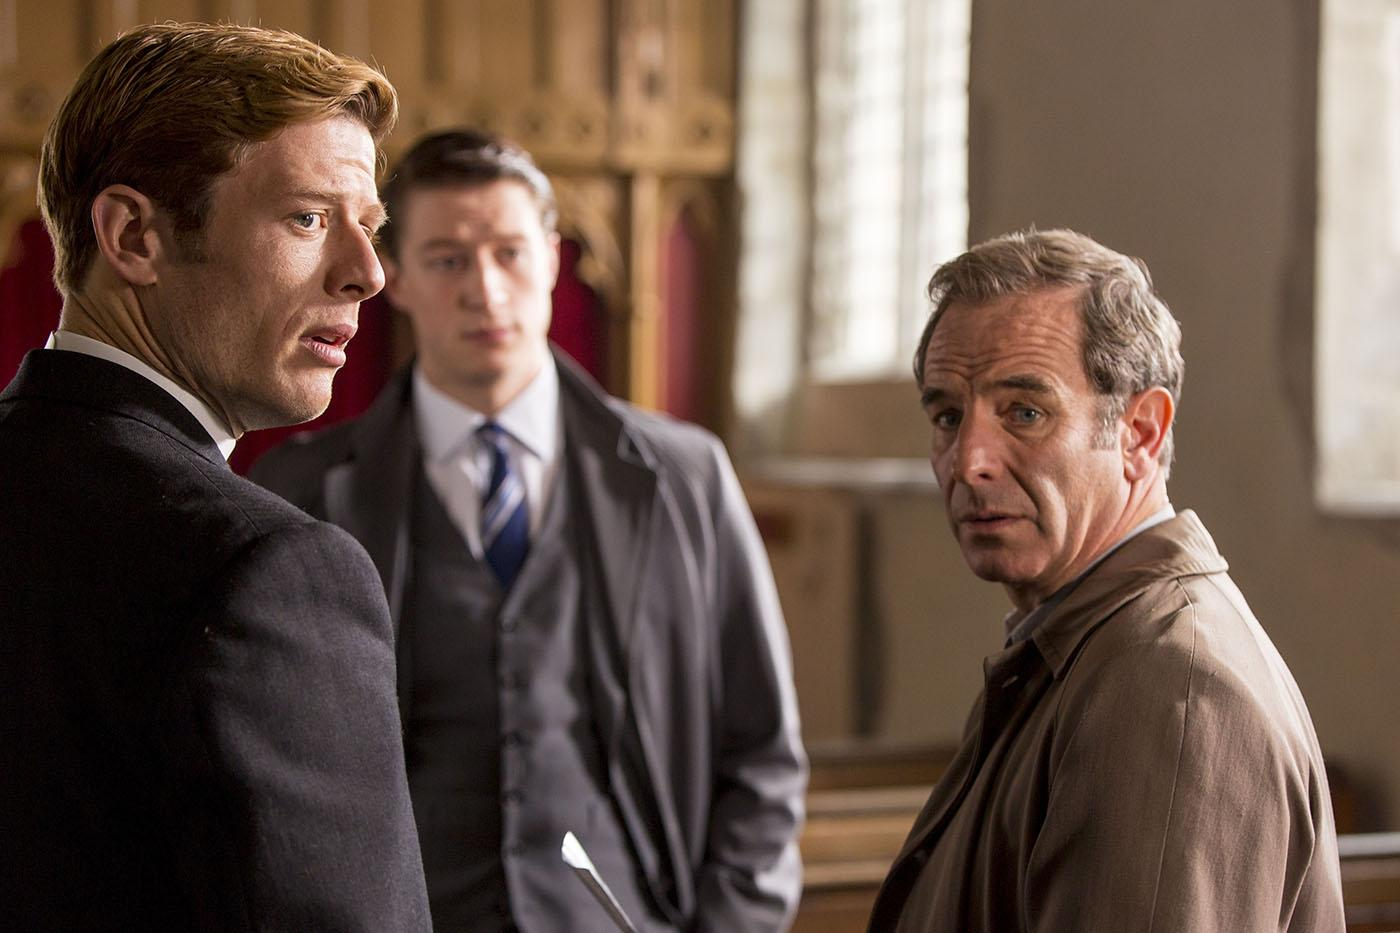 James Norton as Sidney Chambers, Lorne MacFadyen as Phil Wilkinson and Robson Green as Geordie Keating in Grantchester. Photo: Colin Hutton and Kudos/ITV for MASTERPIECE